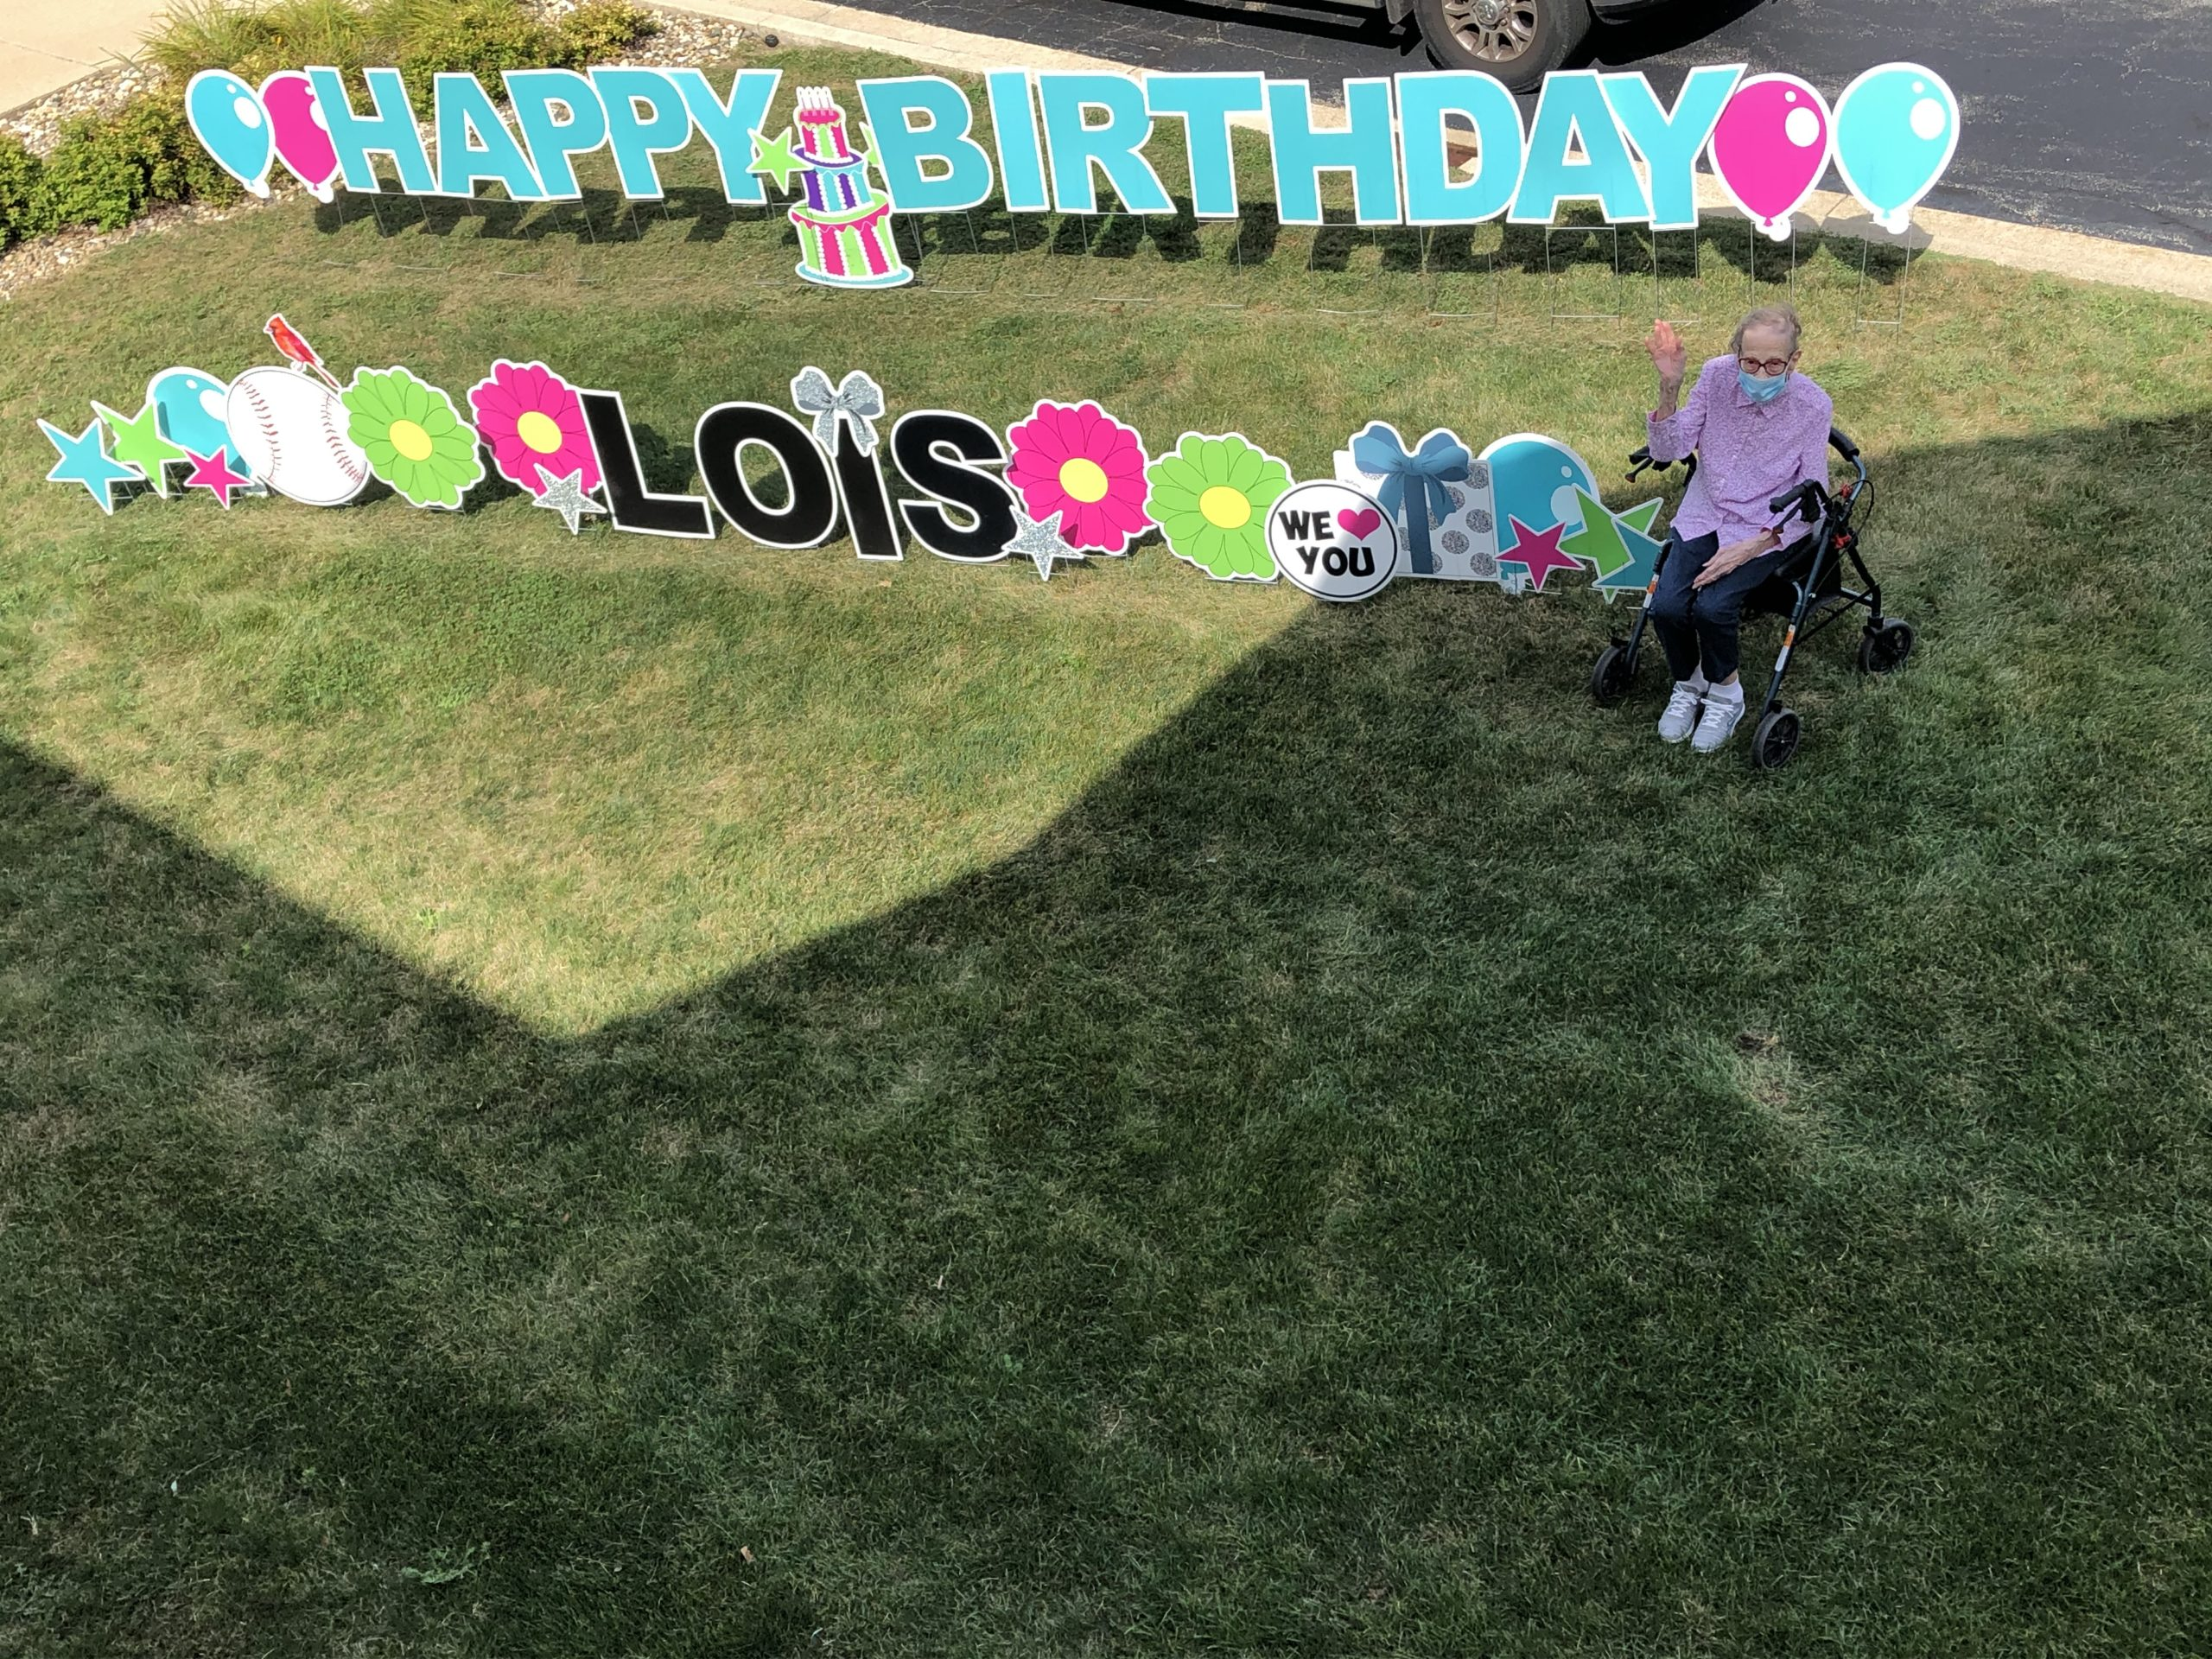 Lois celebrated her 98th birthday in a big way!